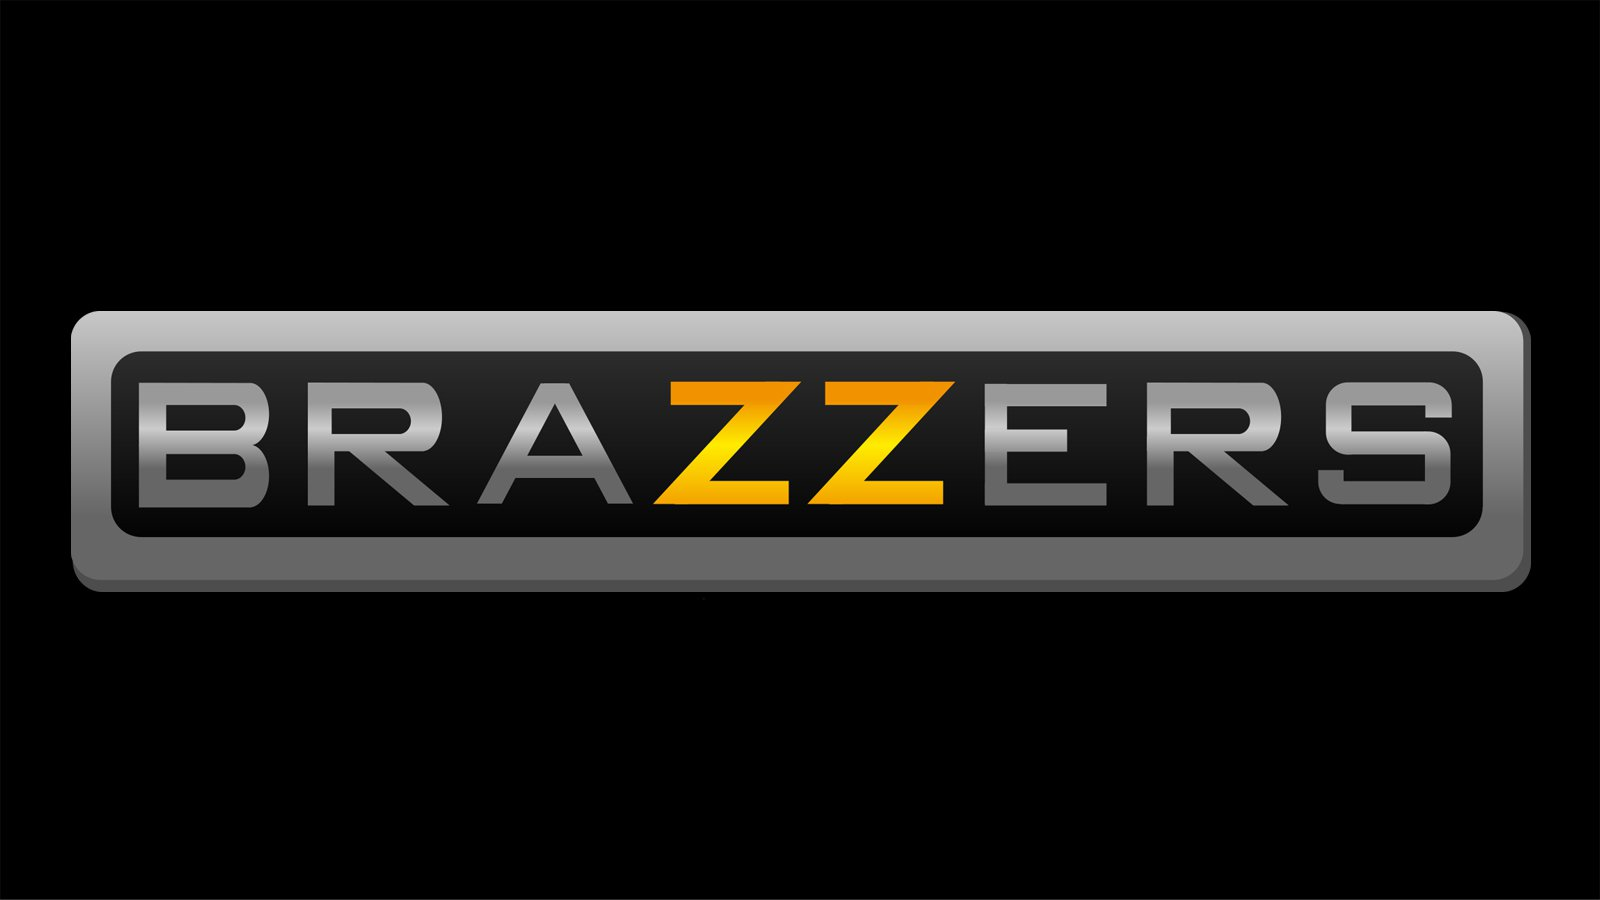 bazzers